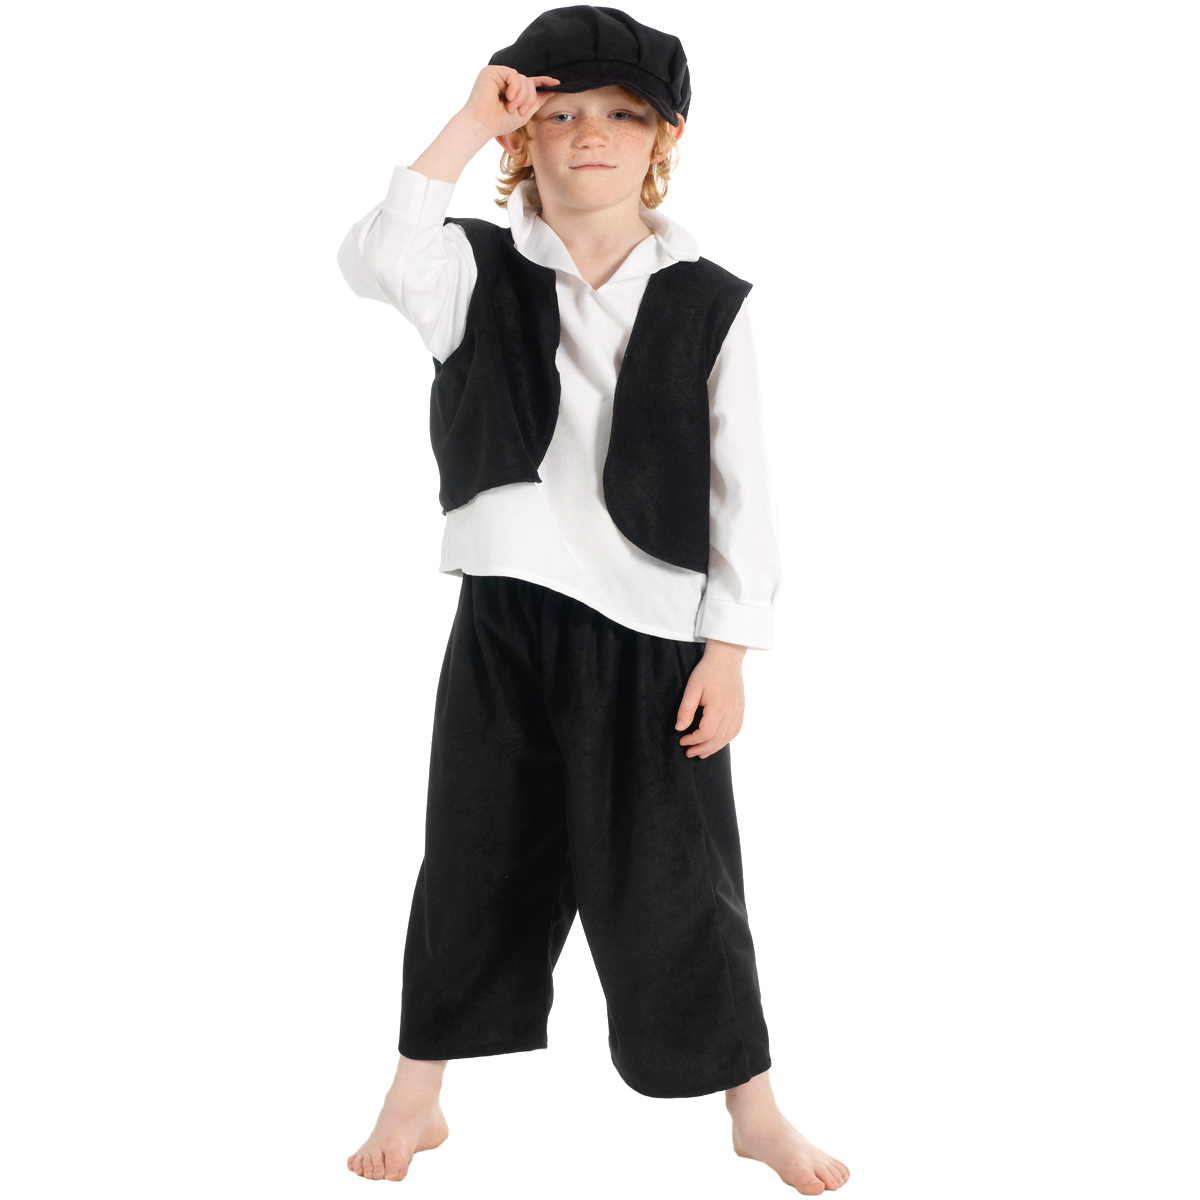 Find great deals on eBay for little boys dress up costumes. Shop with confidence.